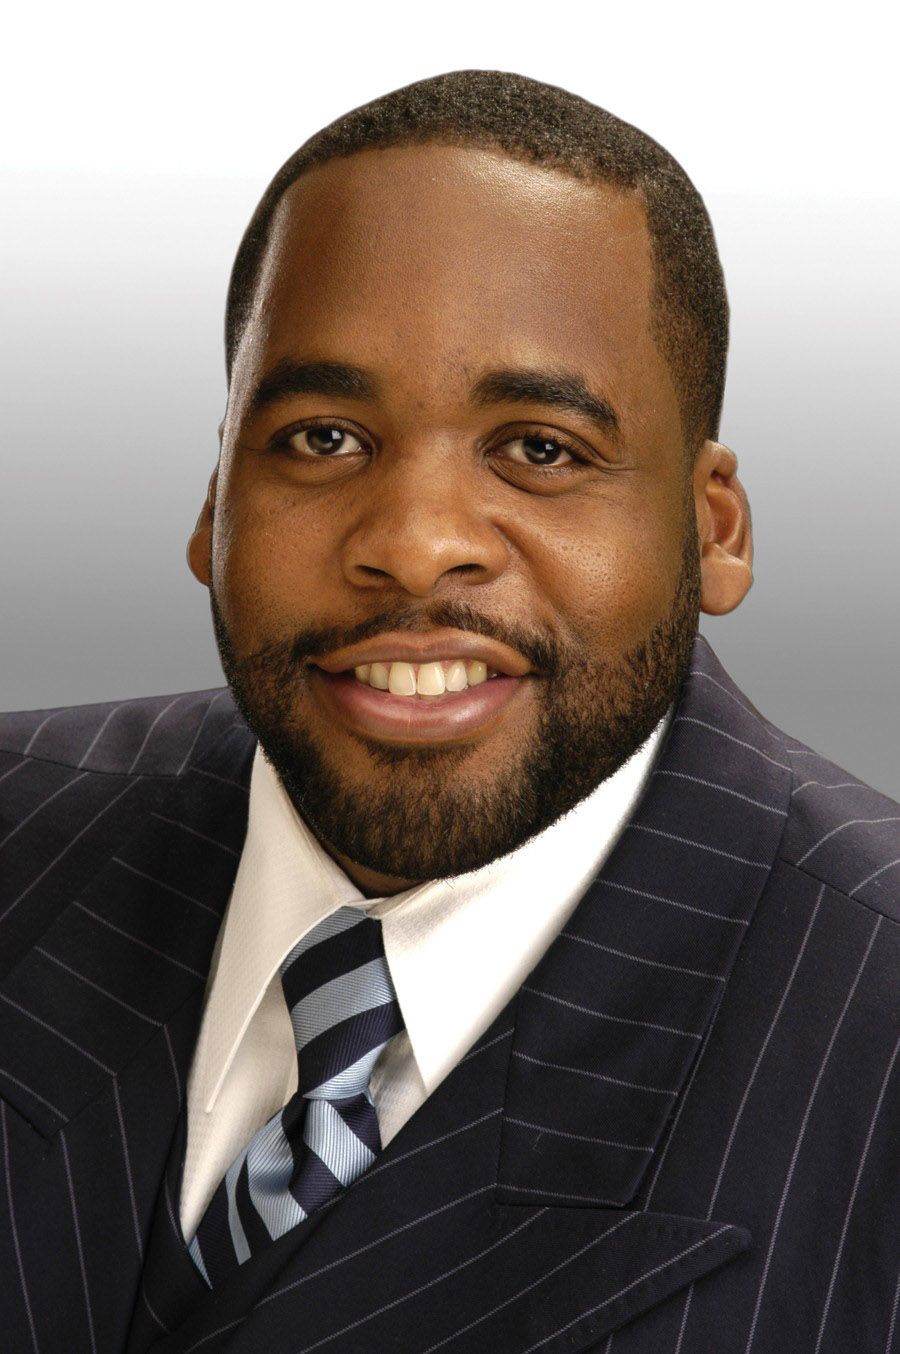 Topoveralls Kwame Kilpatrick News And Pictures